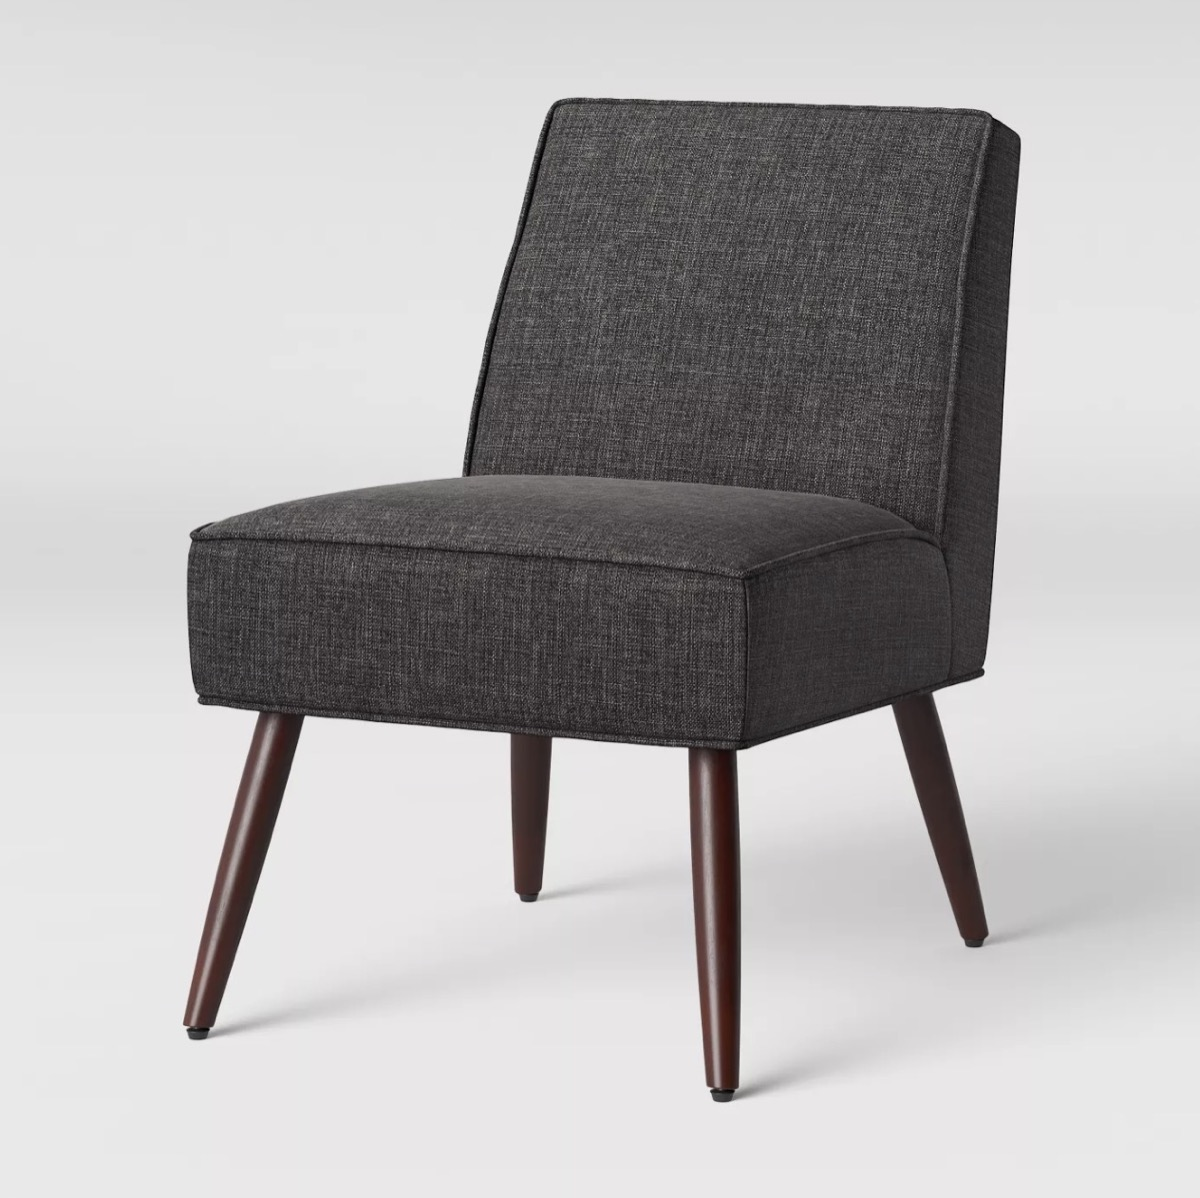 gray chair on white background, target home decor items